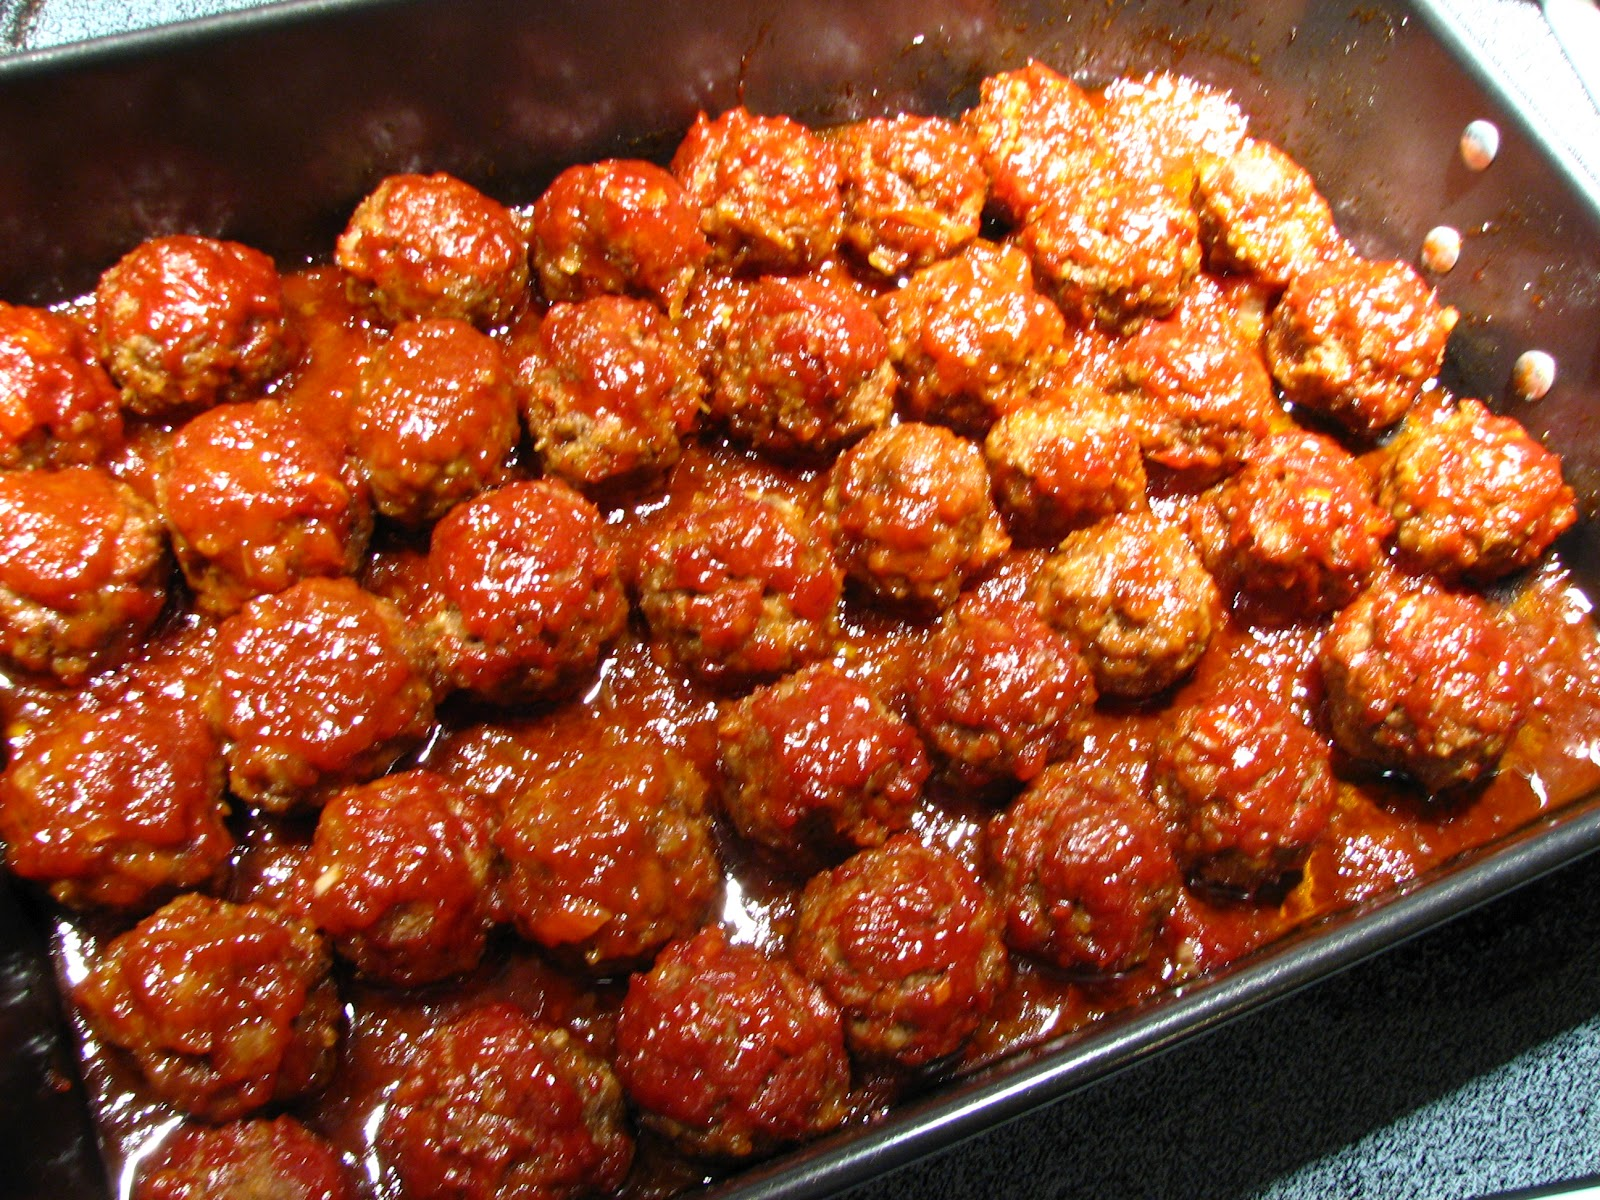 Baked Barbecued Meatballs will make your home smell wonderful. Just ...